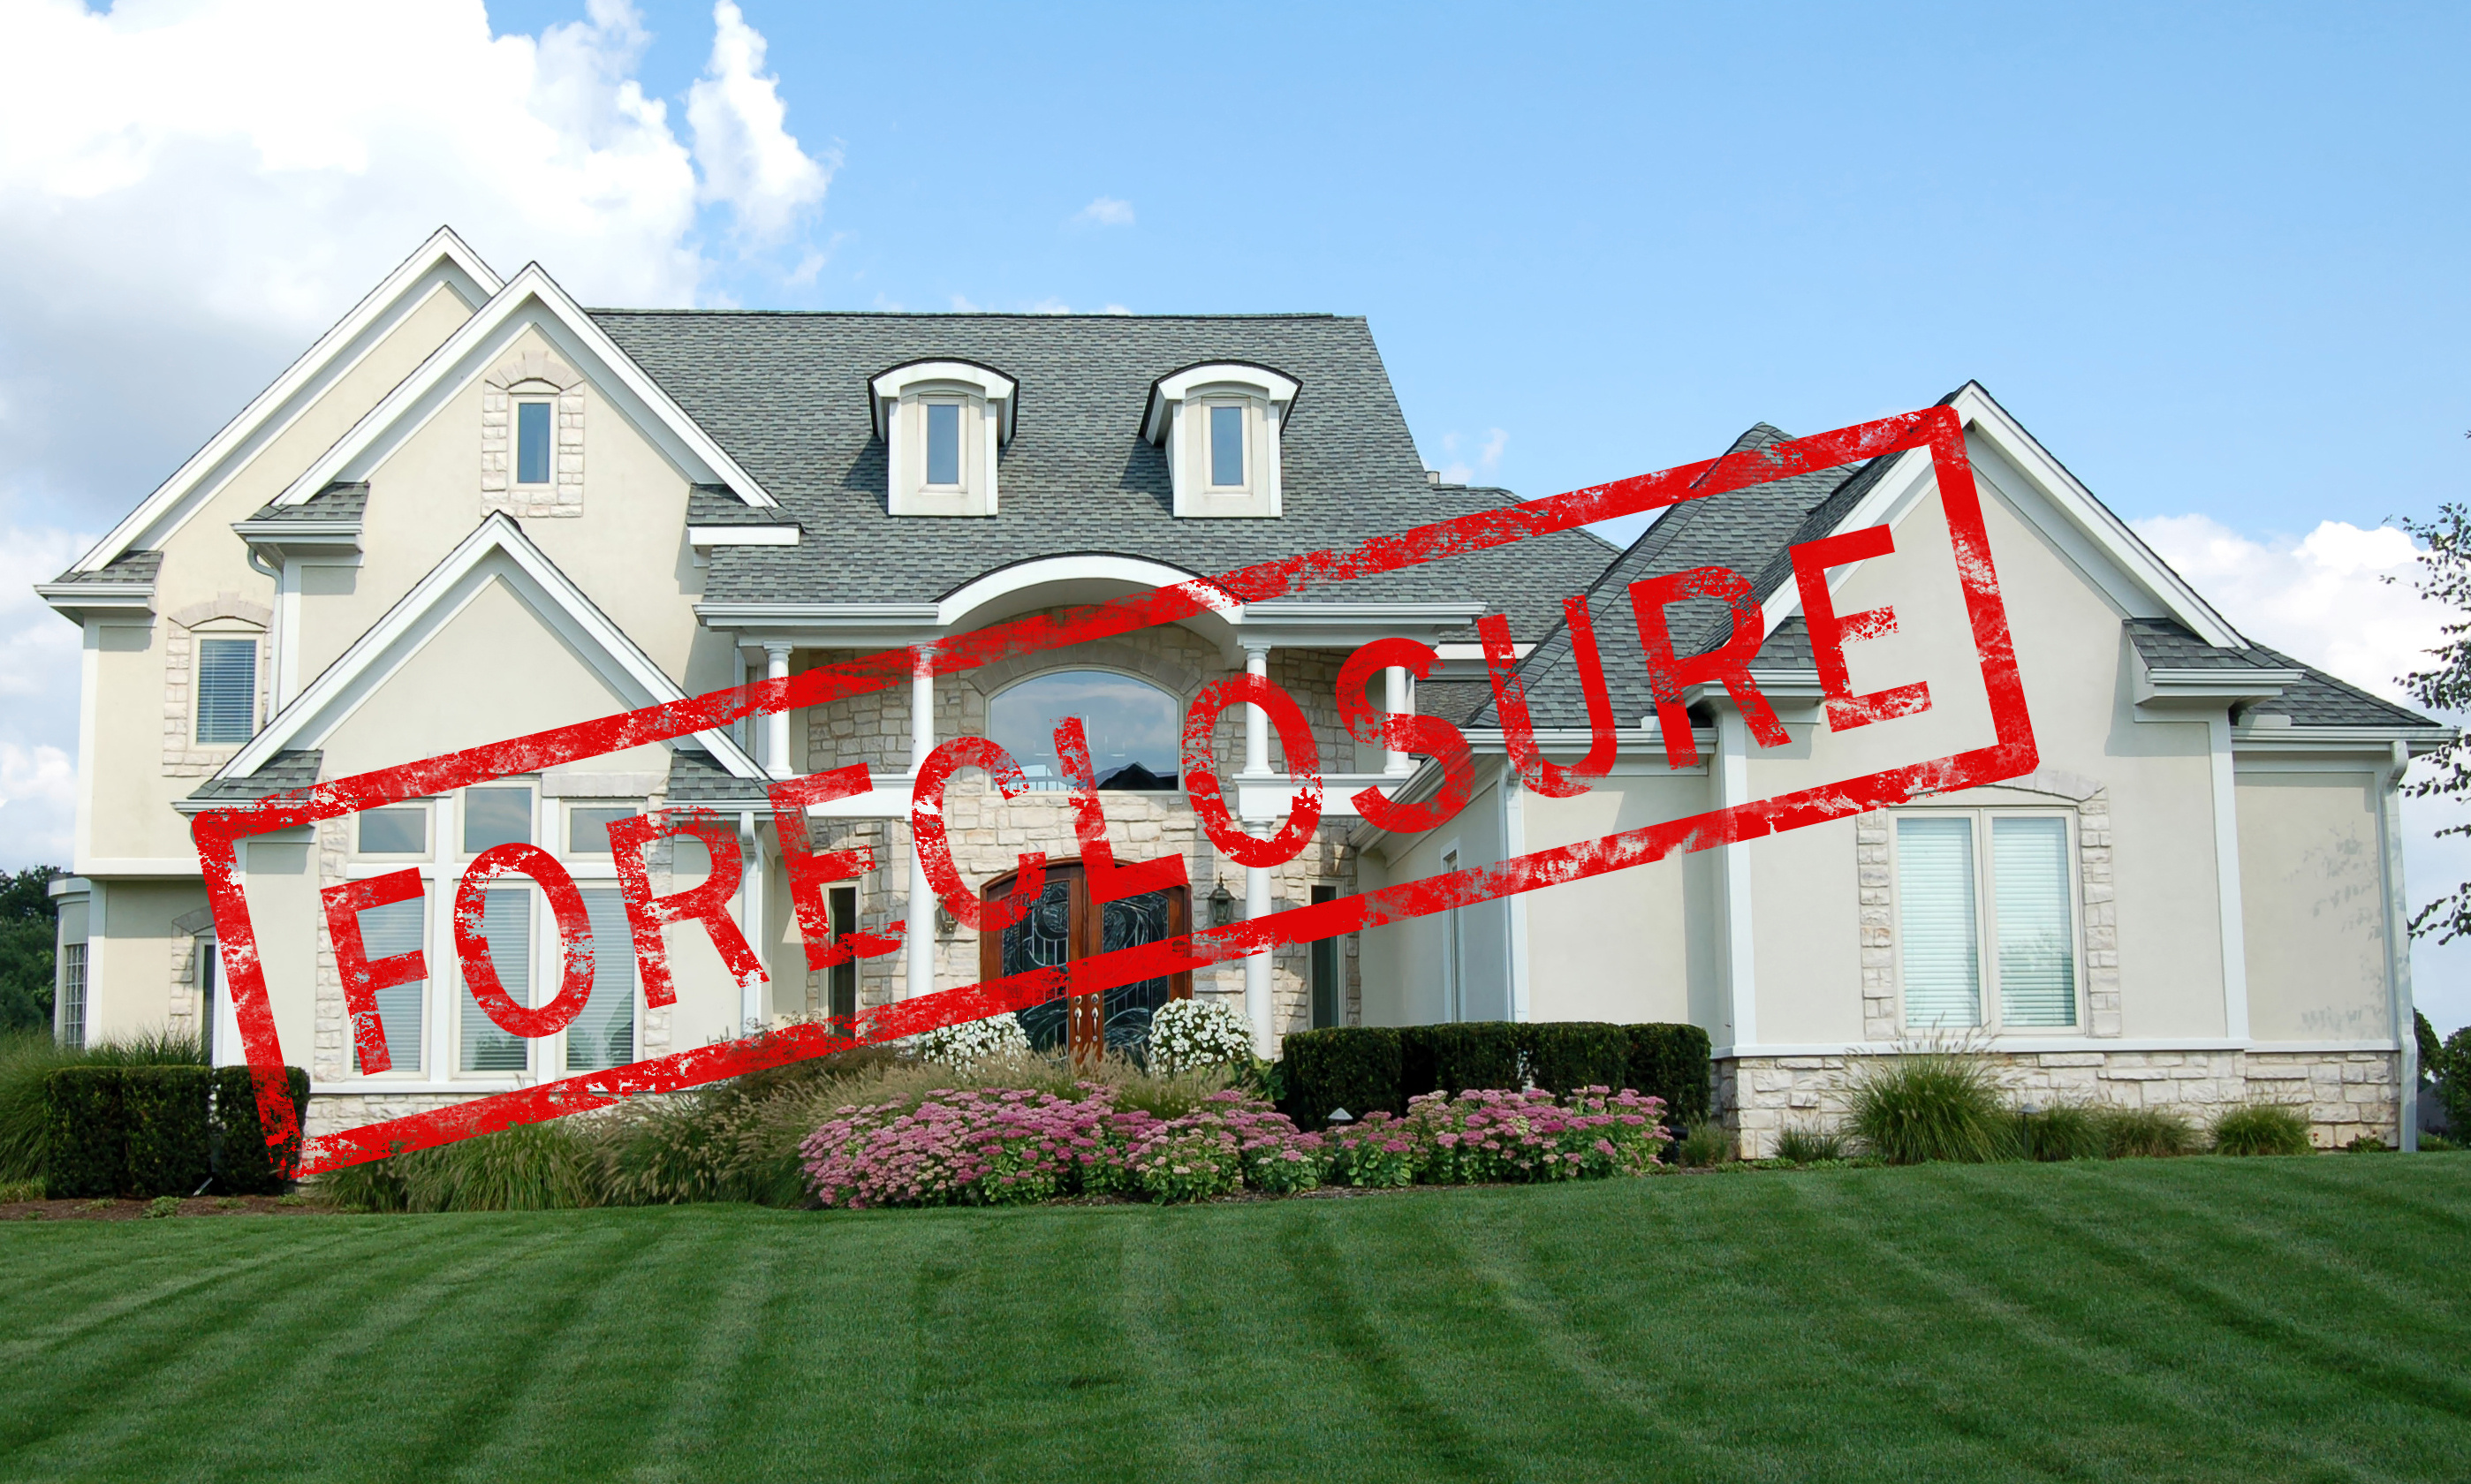 Call Village Appraisal Ltd. to discuss appraisals on Fairfield foreclosures